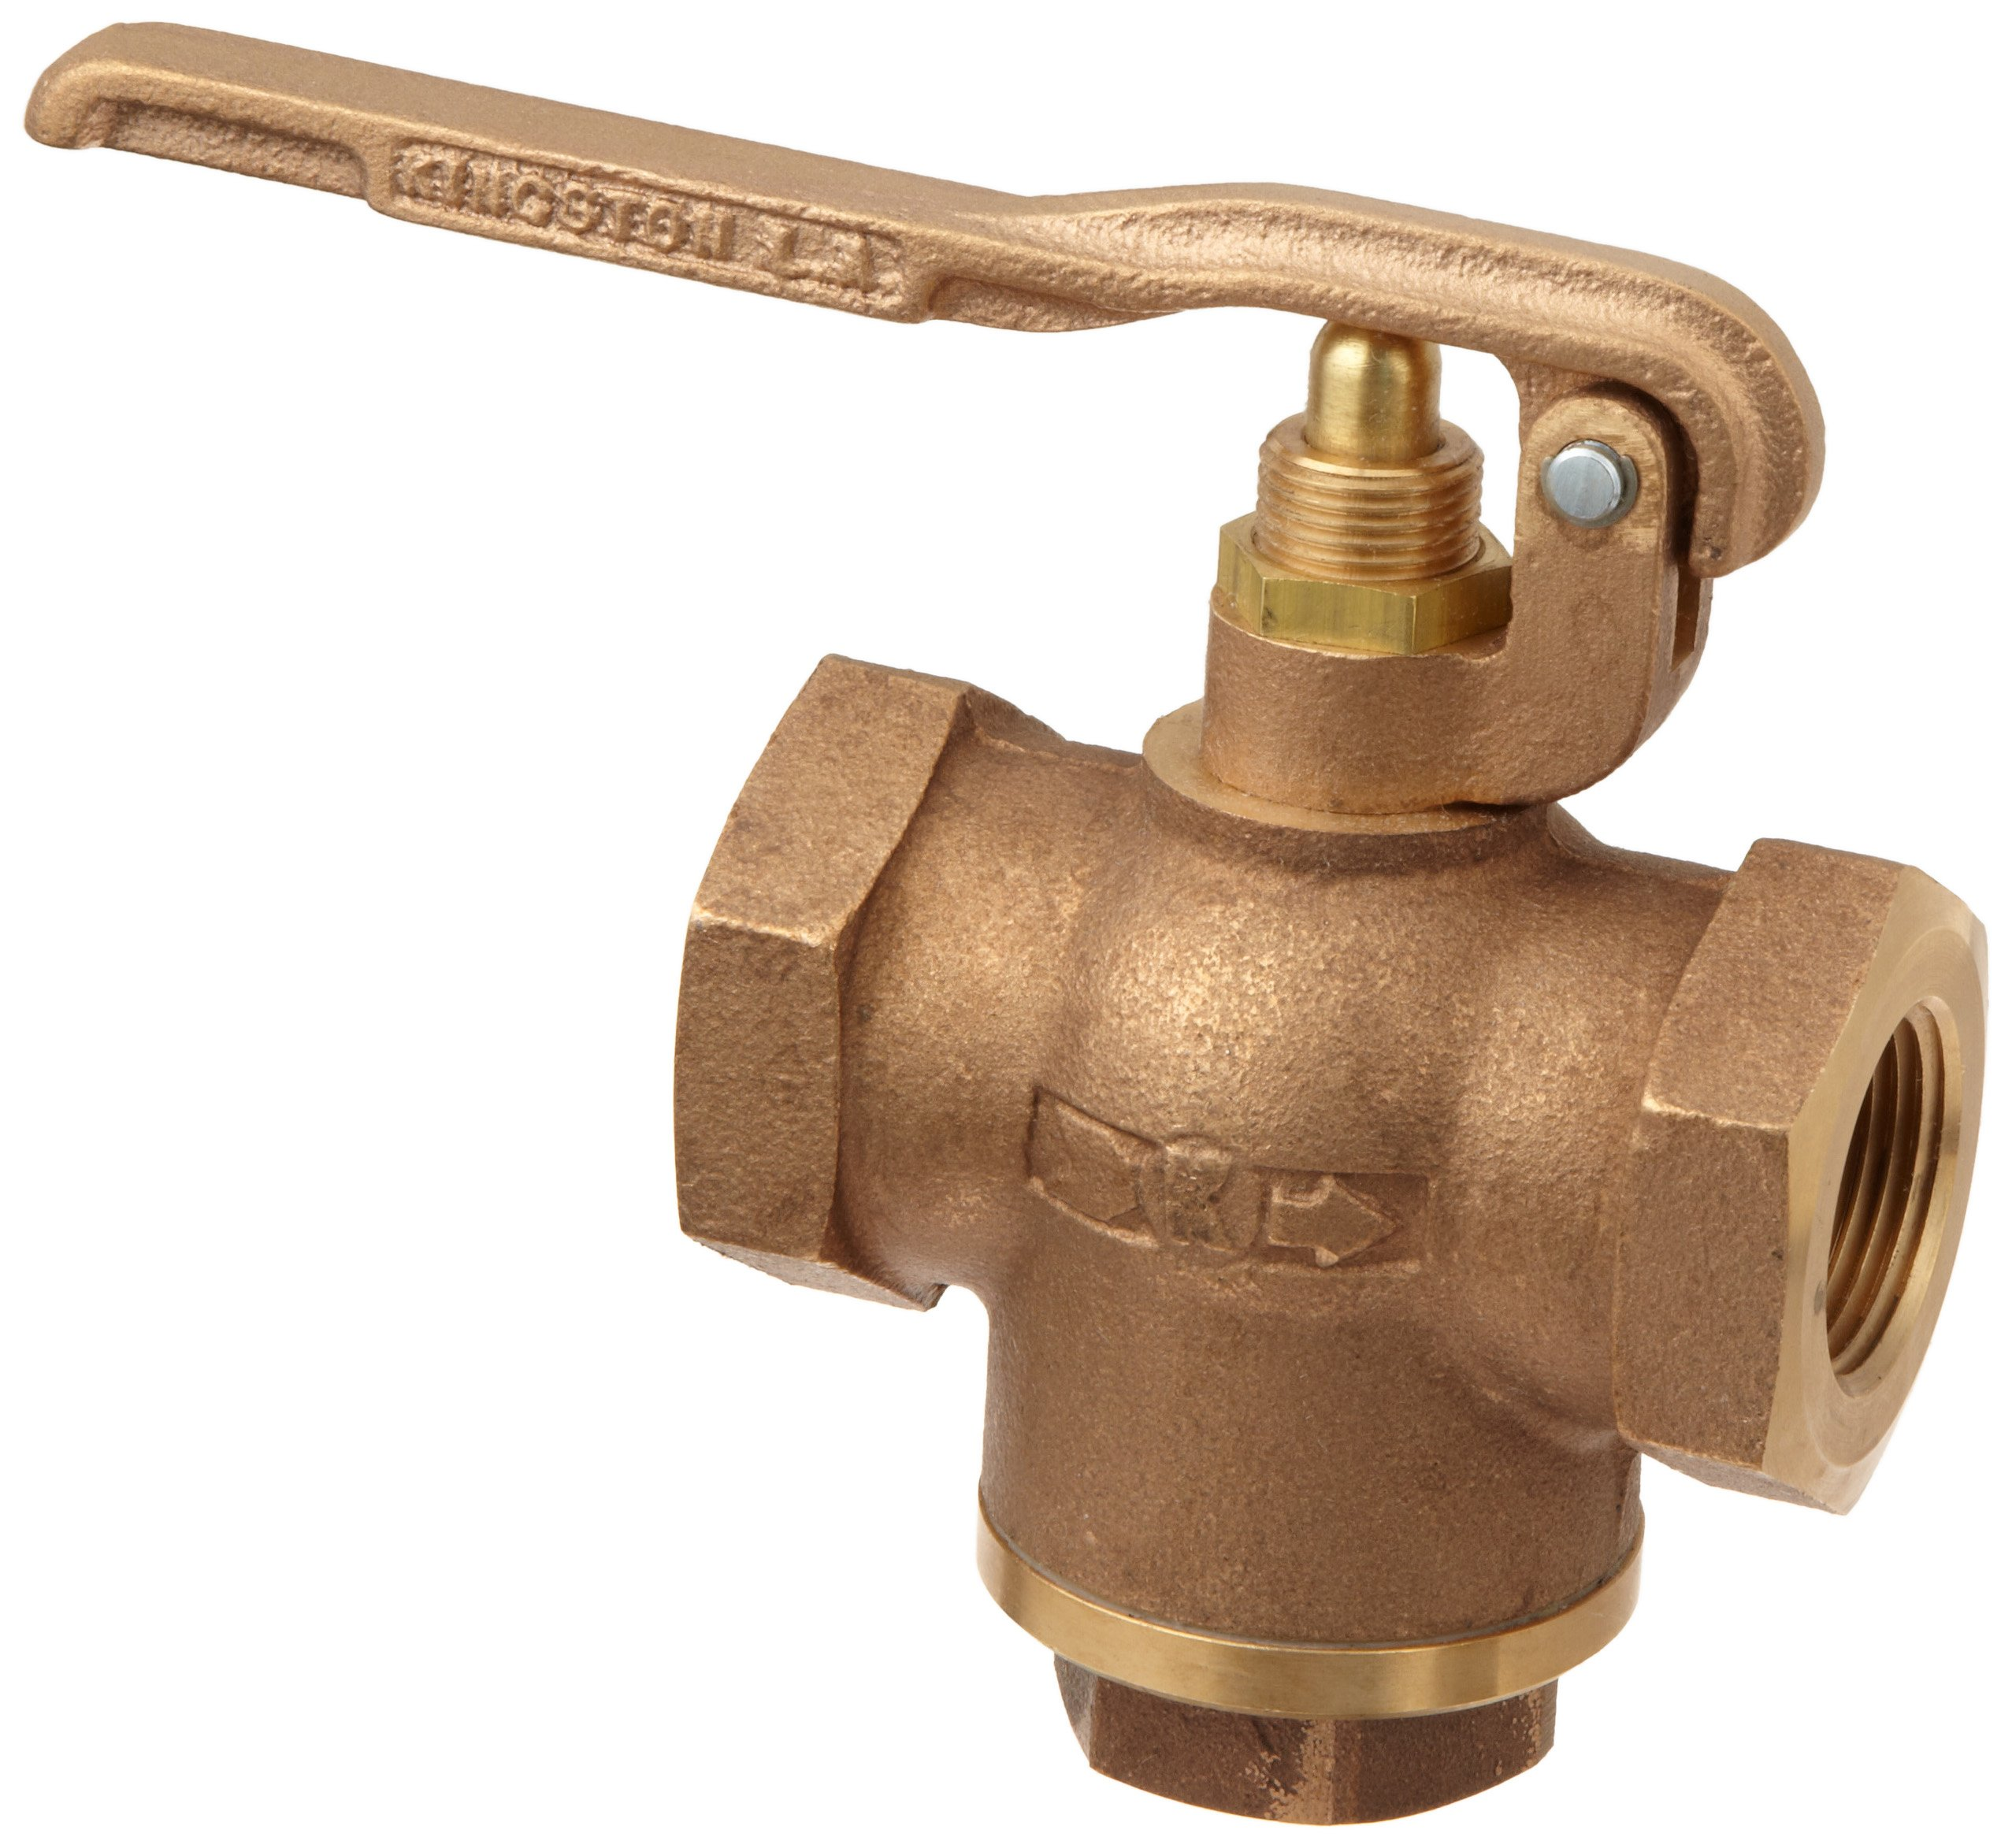 Kingston 305B Series Brass Quick Opening Flow Control Valve, Squeeze Lever, 1'' NPT Female